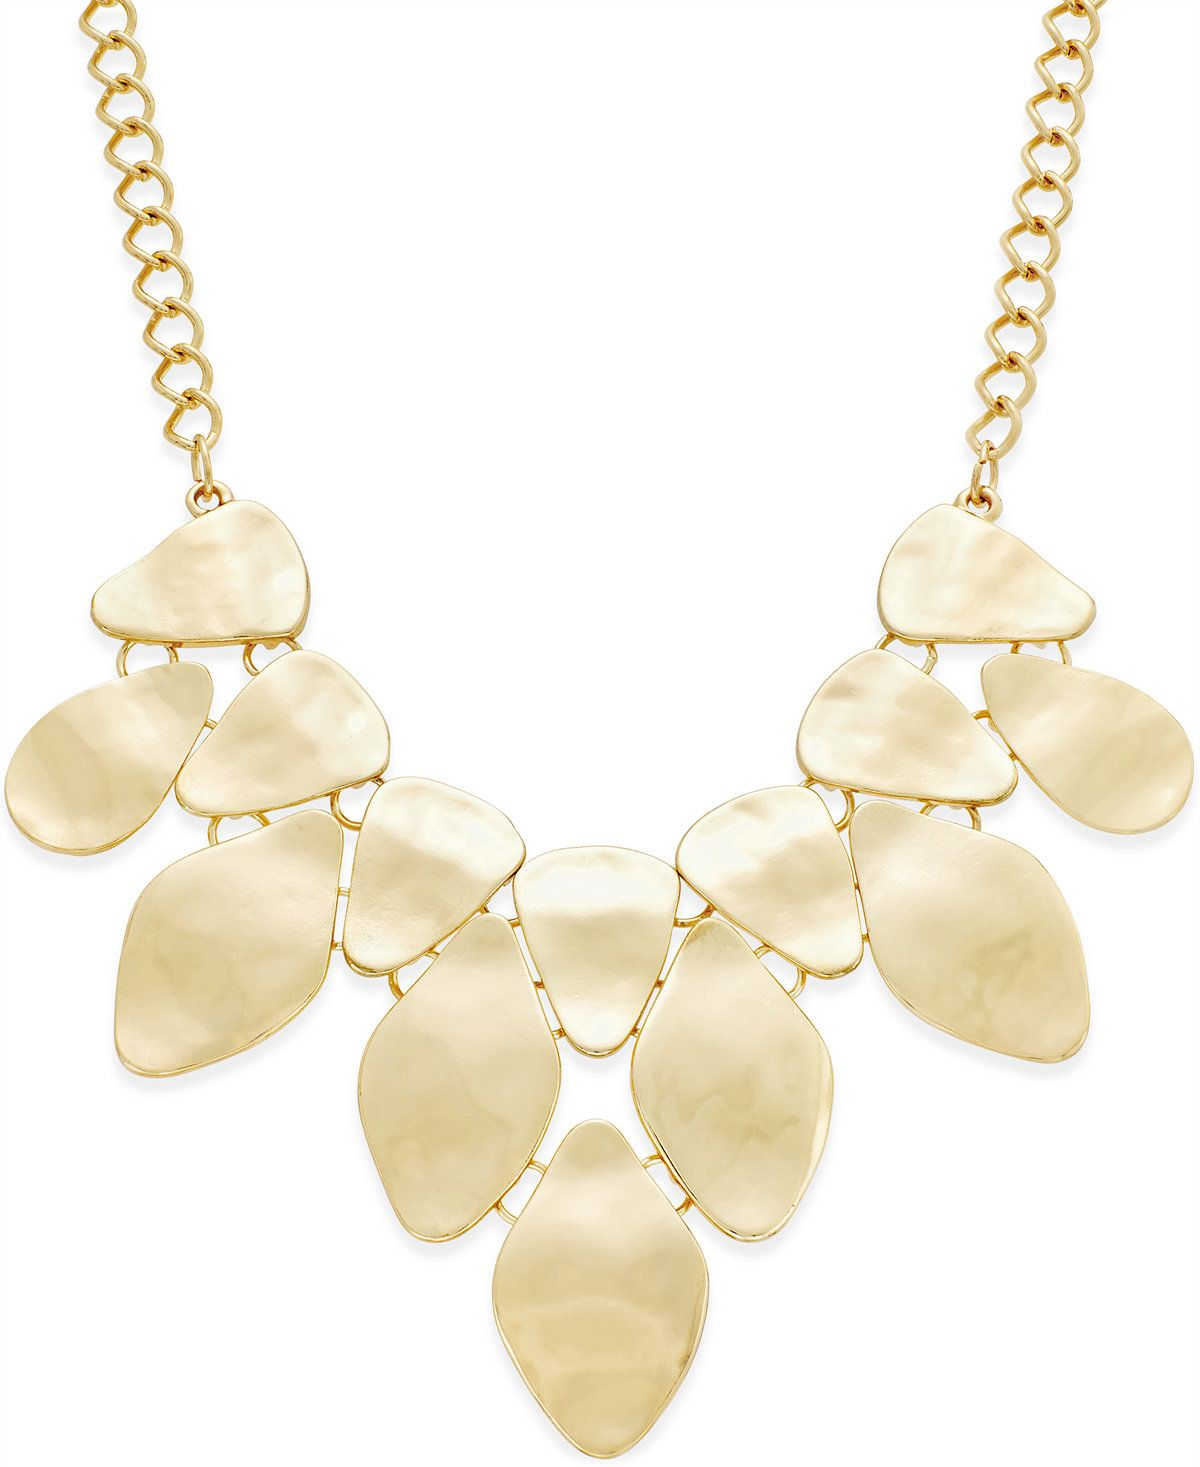 INC International Concepts Bib Necklace, Only at Macy's - Jewelry & Watches - Macy's